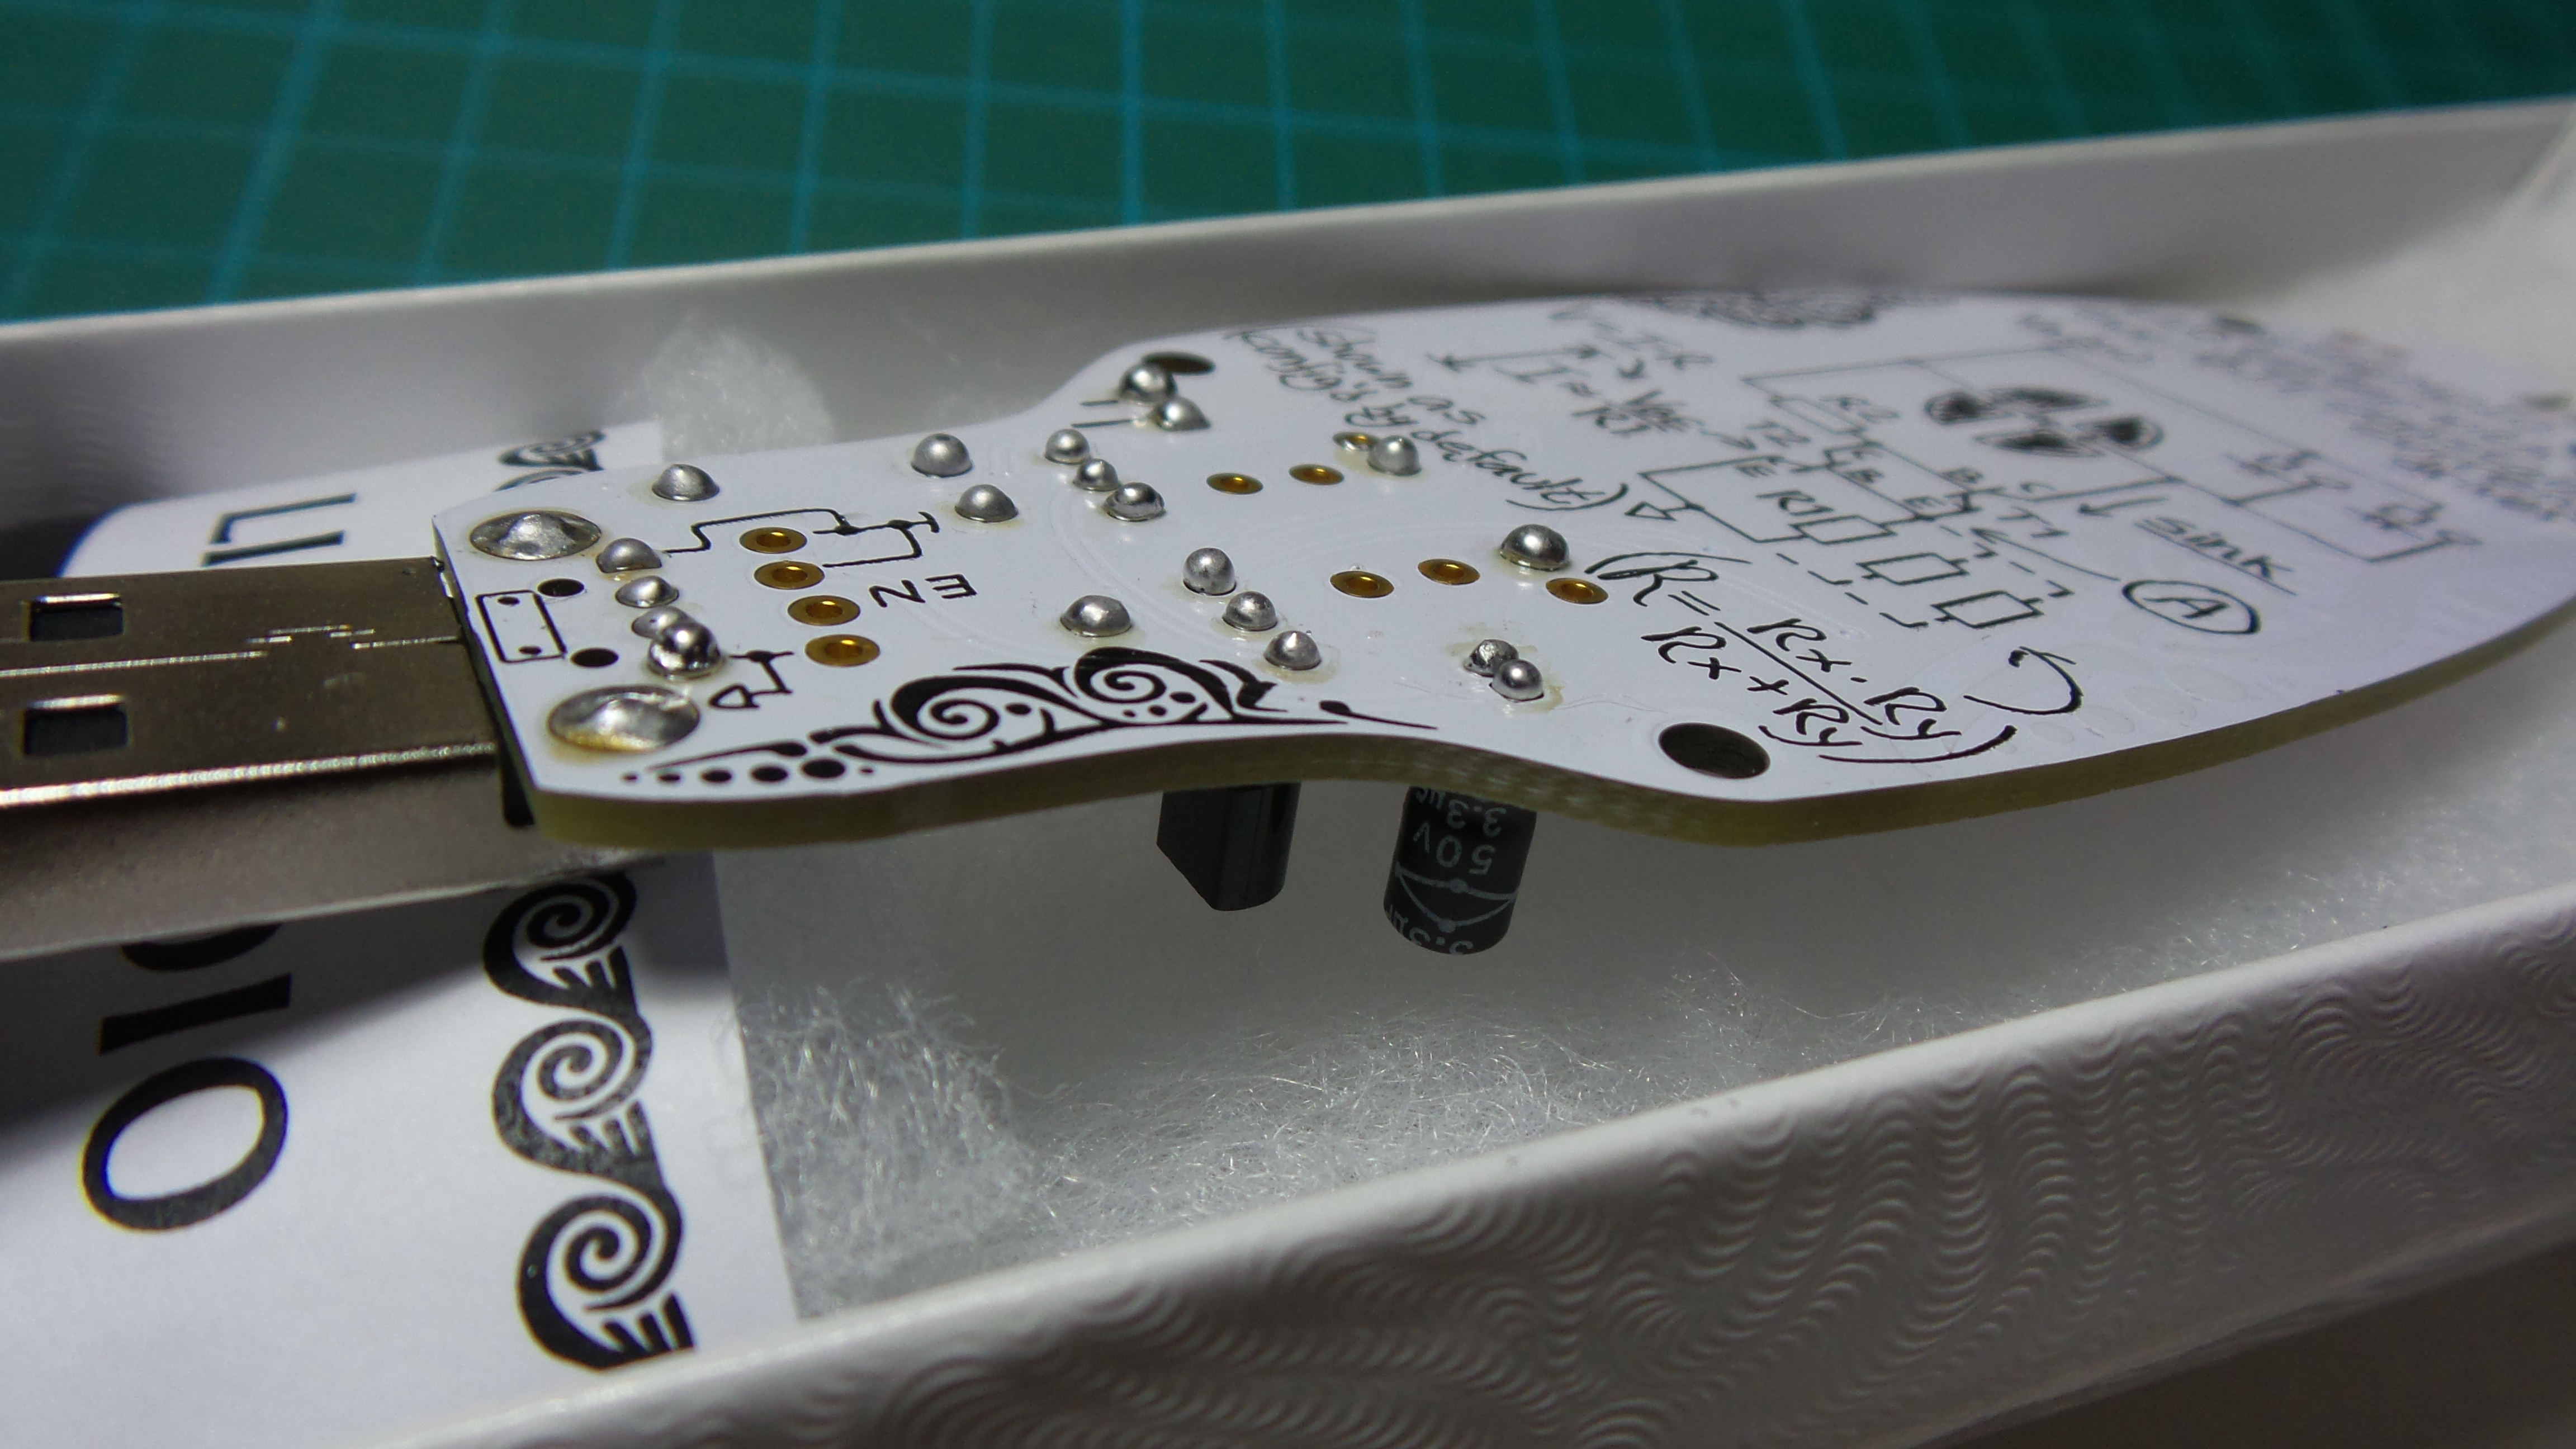 embossed flair for your PCB design? the #BoldportClub LigEmDio